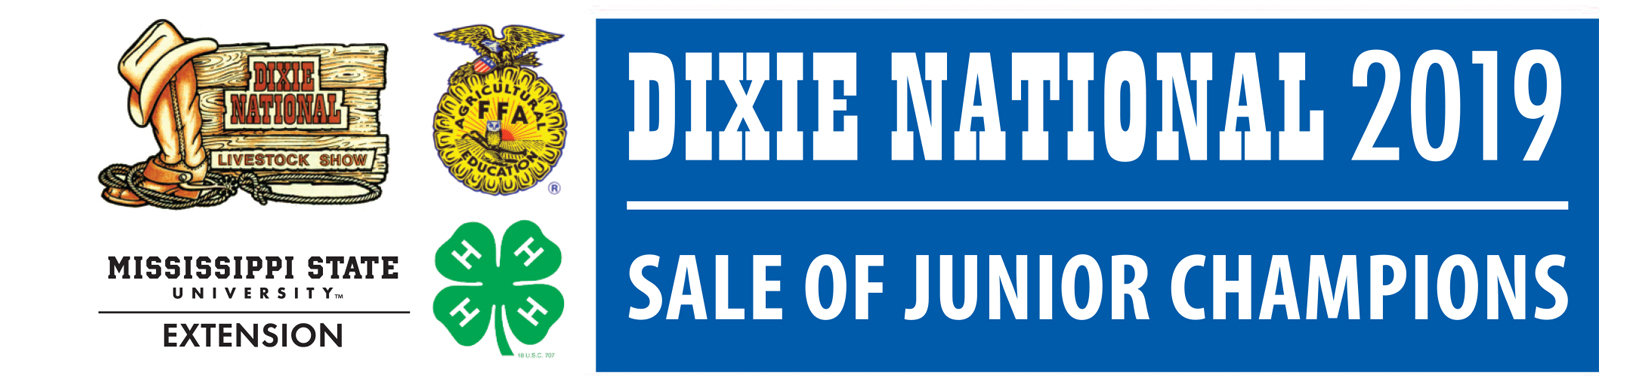 Sale of Junior Champions logo.